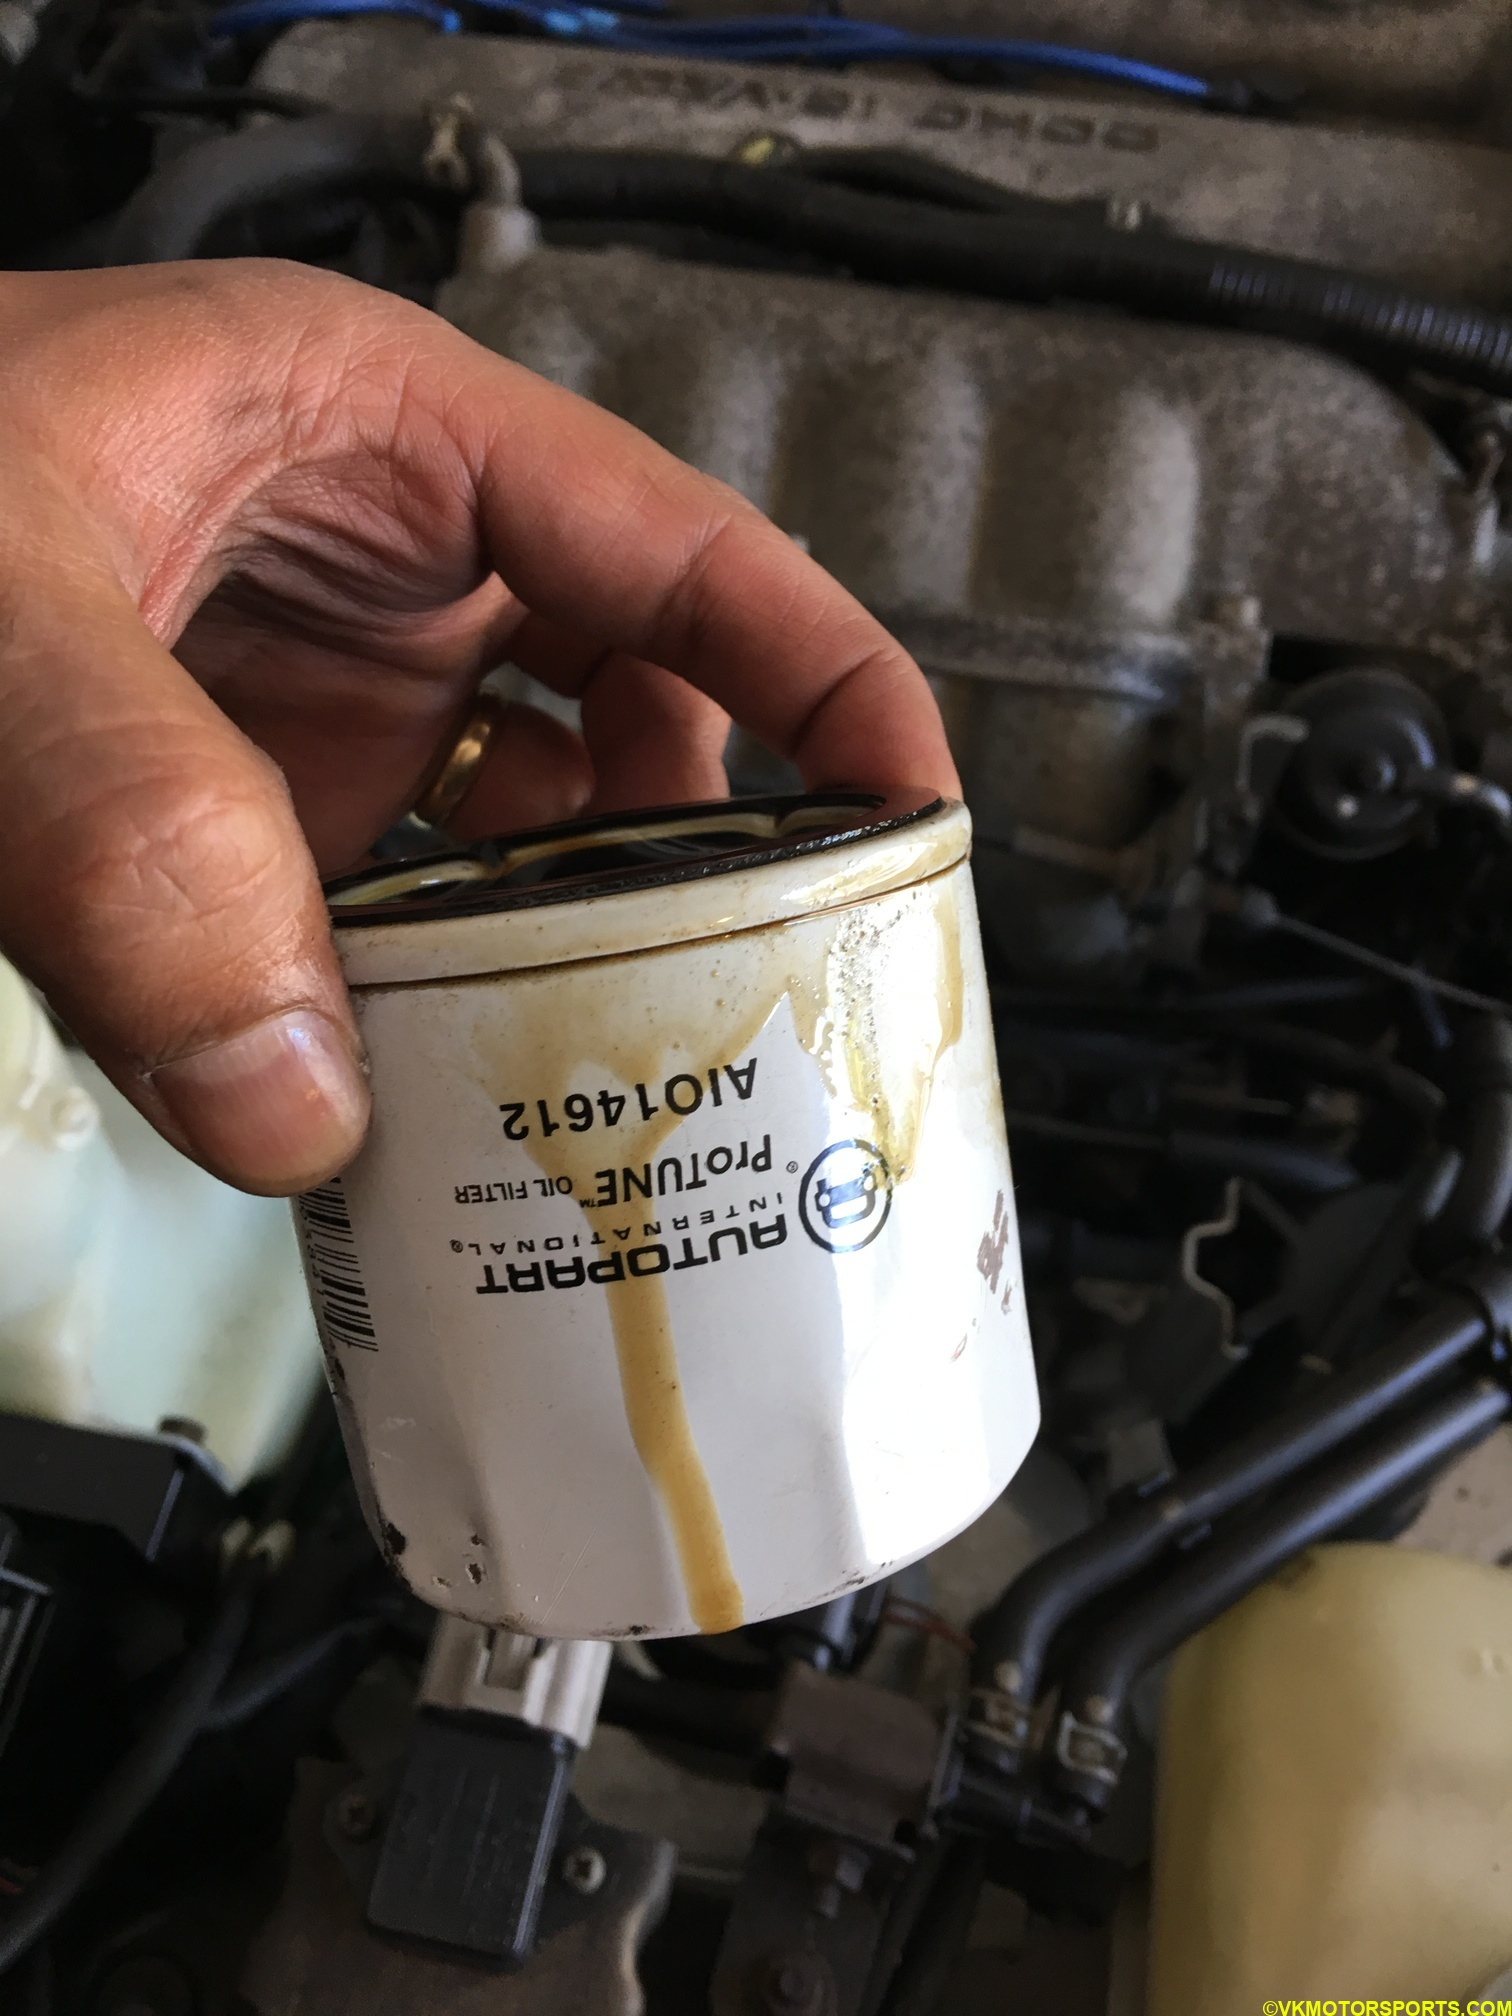 Figure 11. Old oil filter is now out